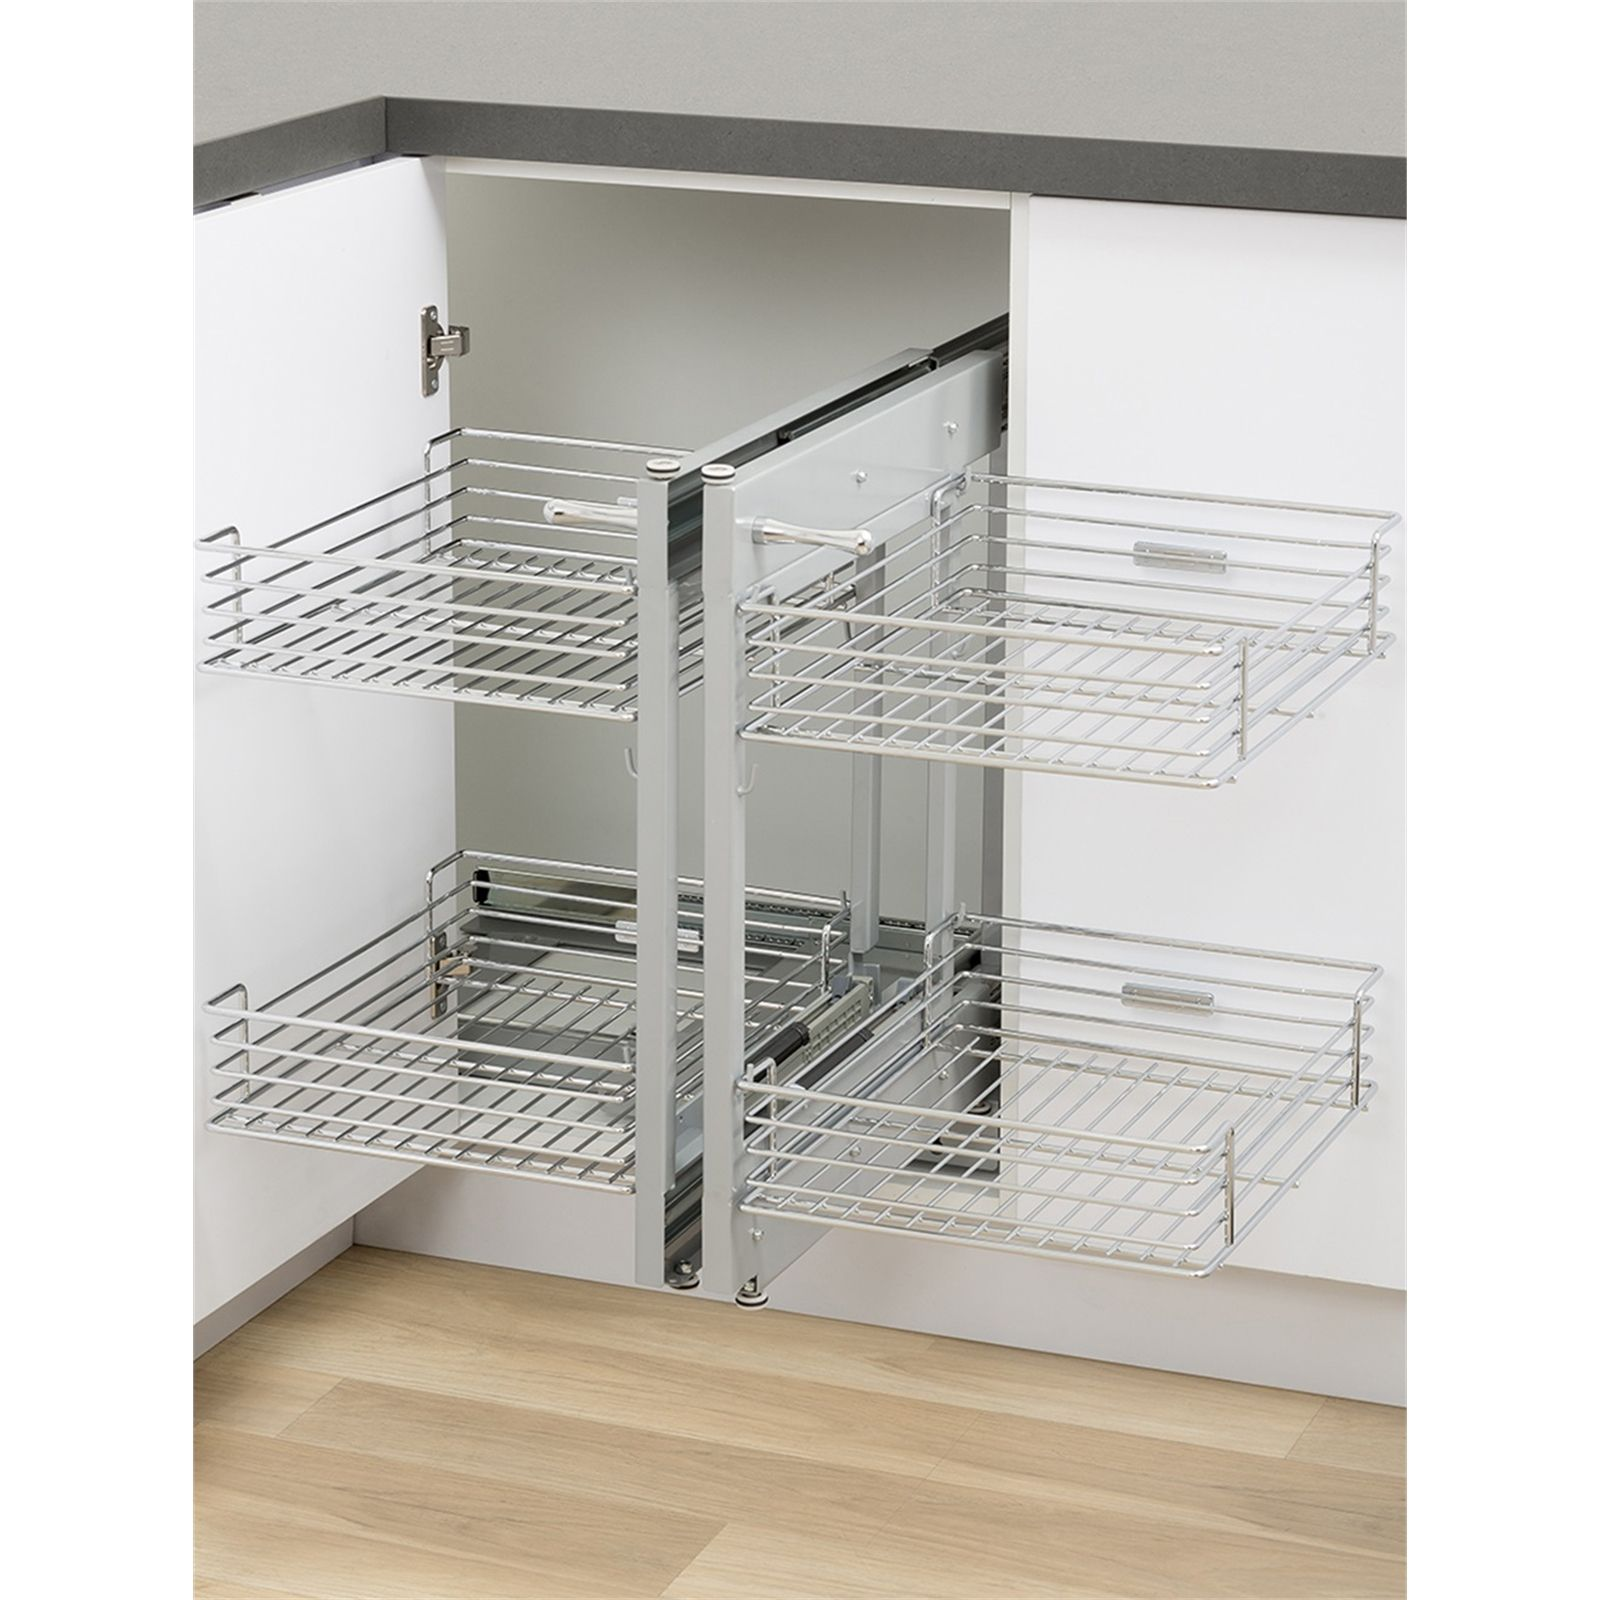 find kaboodle blind corner 2 tier soft close pull out baskets at find kaboodle 2 tier chrome blind corner soft close pull out baskets at bunnings warehouse visit your local store for the widest range of kitchen products